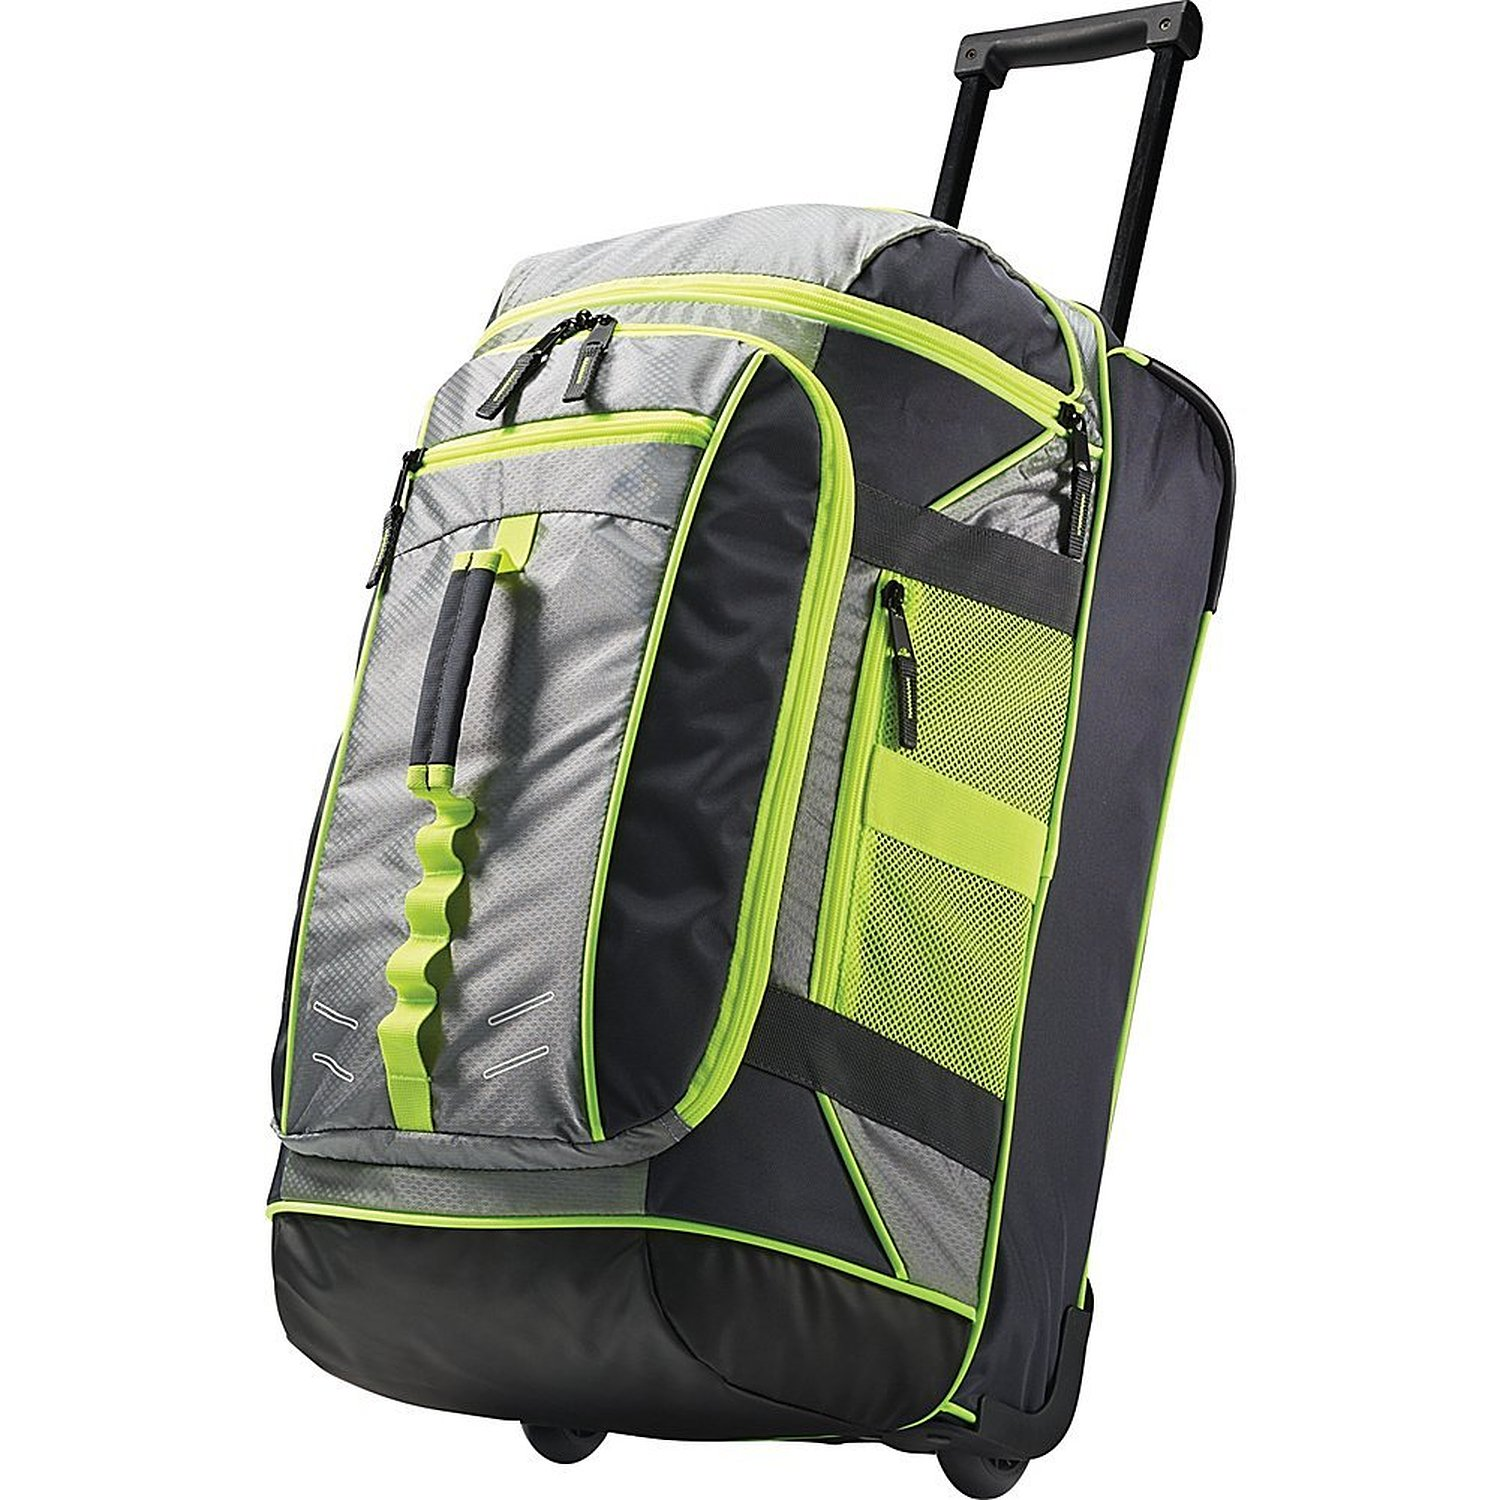 American Tourister Mombopack Wheeled Duffel